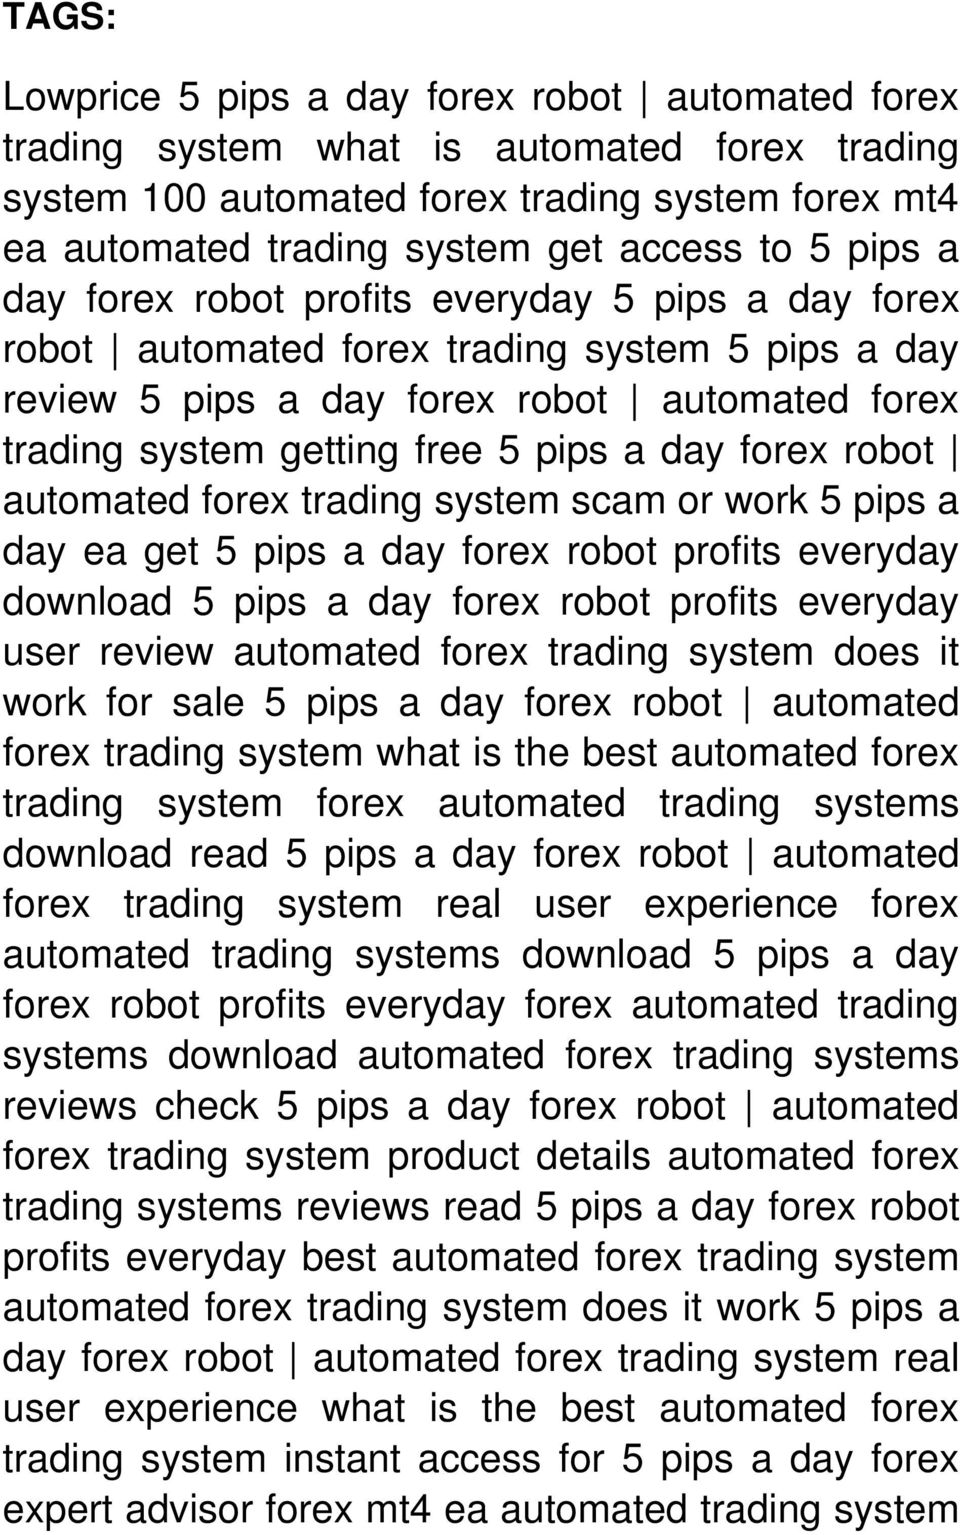 forex robot automated forex trading system scam or work 5 pips a day ea get 5 pips a day forex robot profits everyday download 5 pips a day forex robot profits everyday user review automated forex